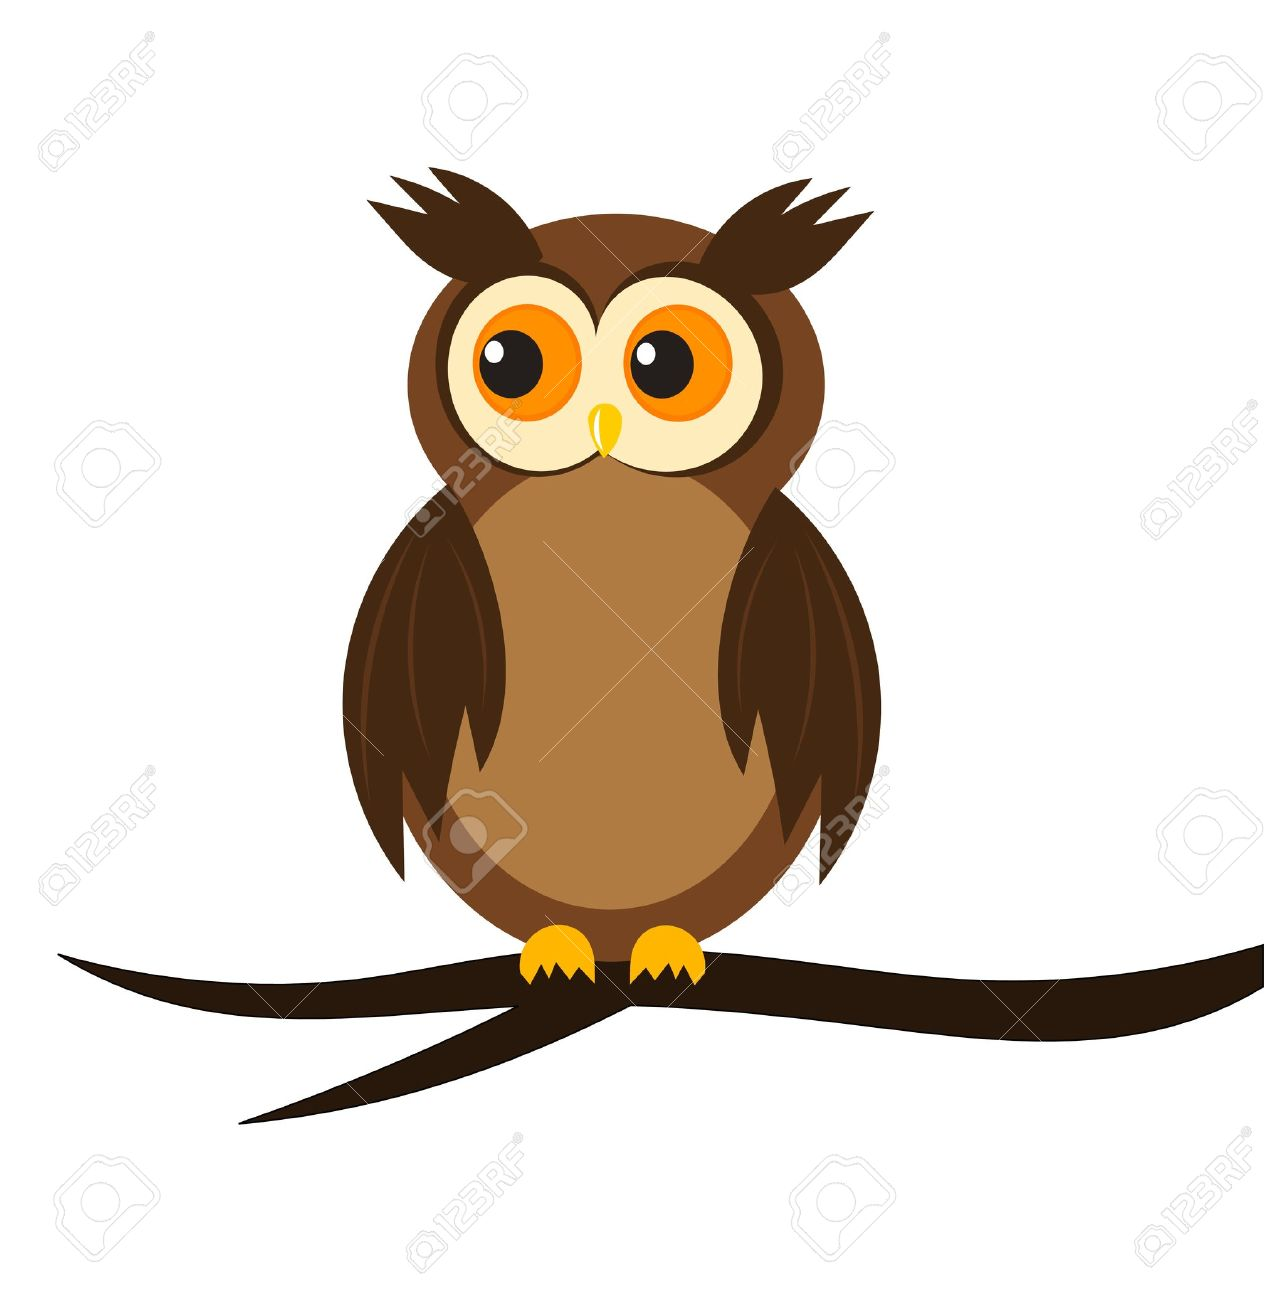 cartoon owl sitting on tree branch royalty free cliparts vectors